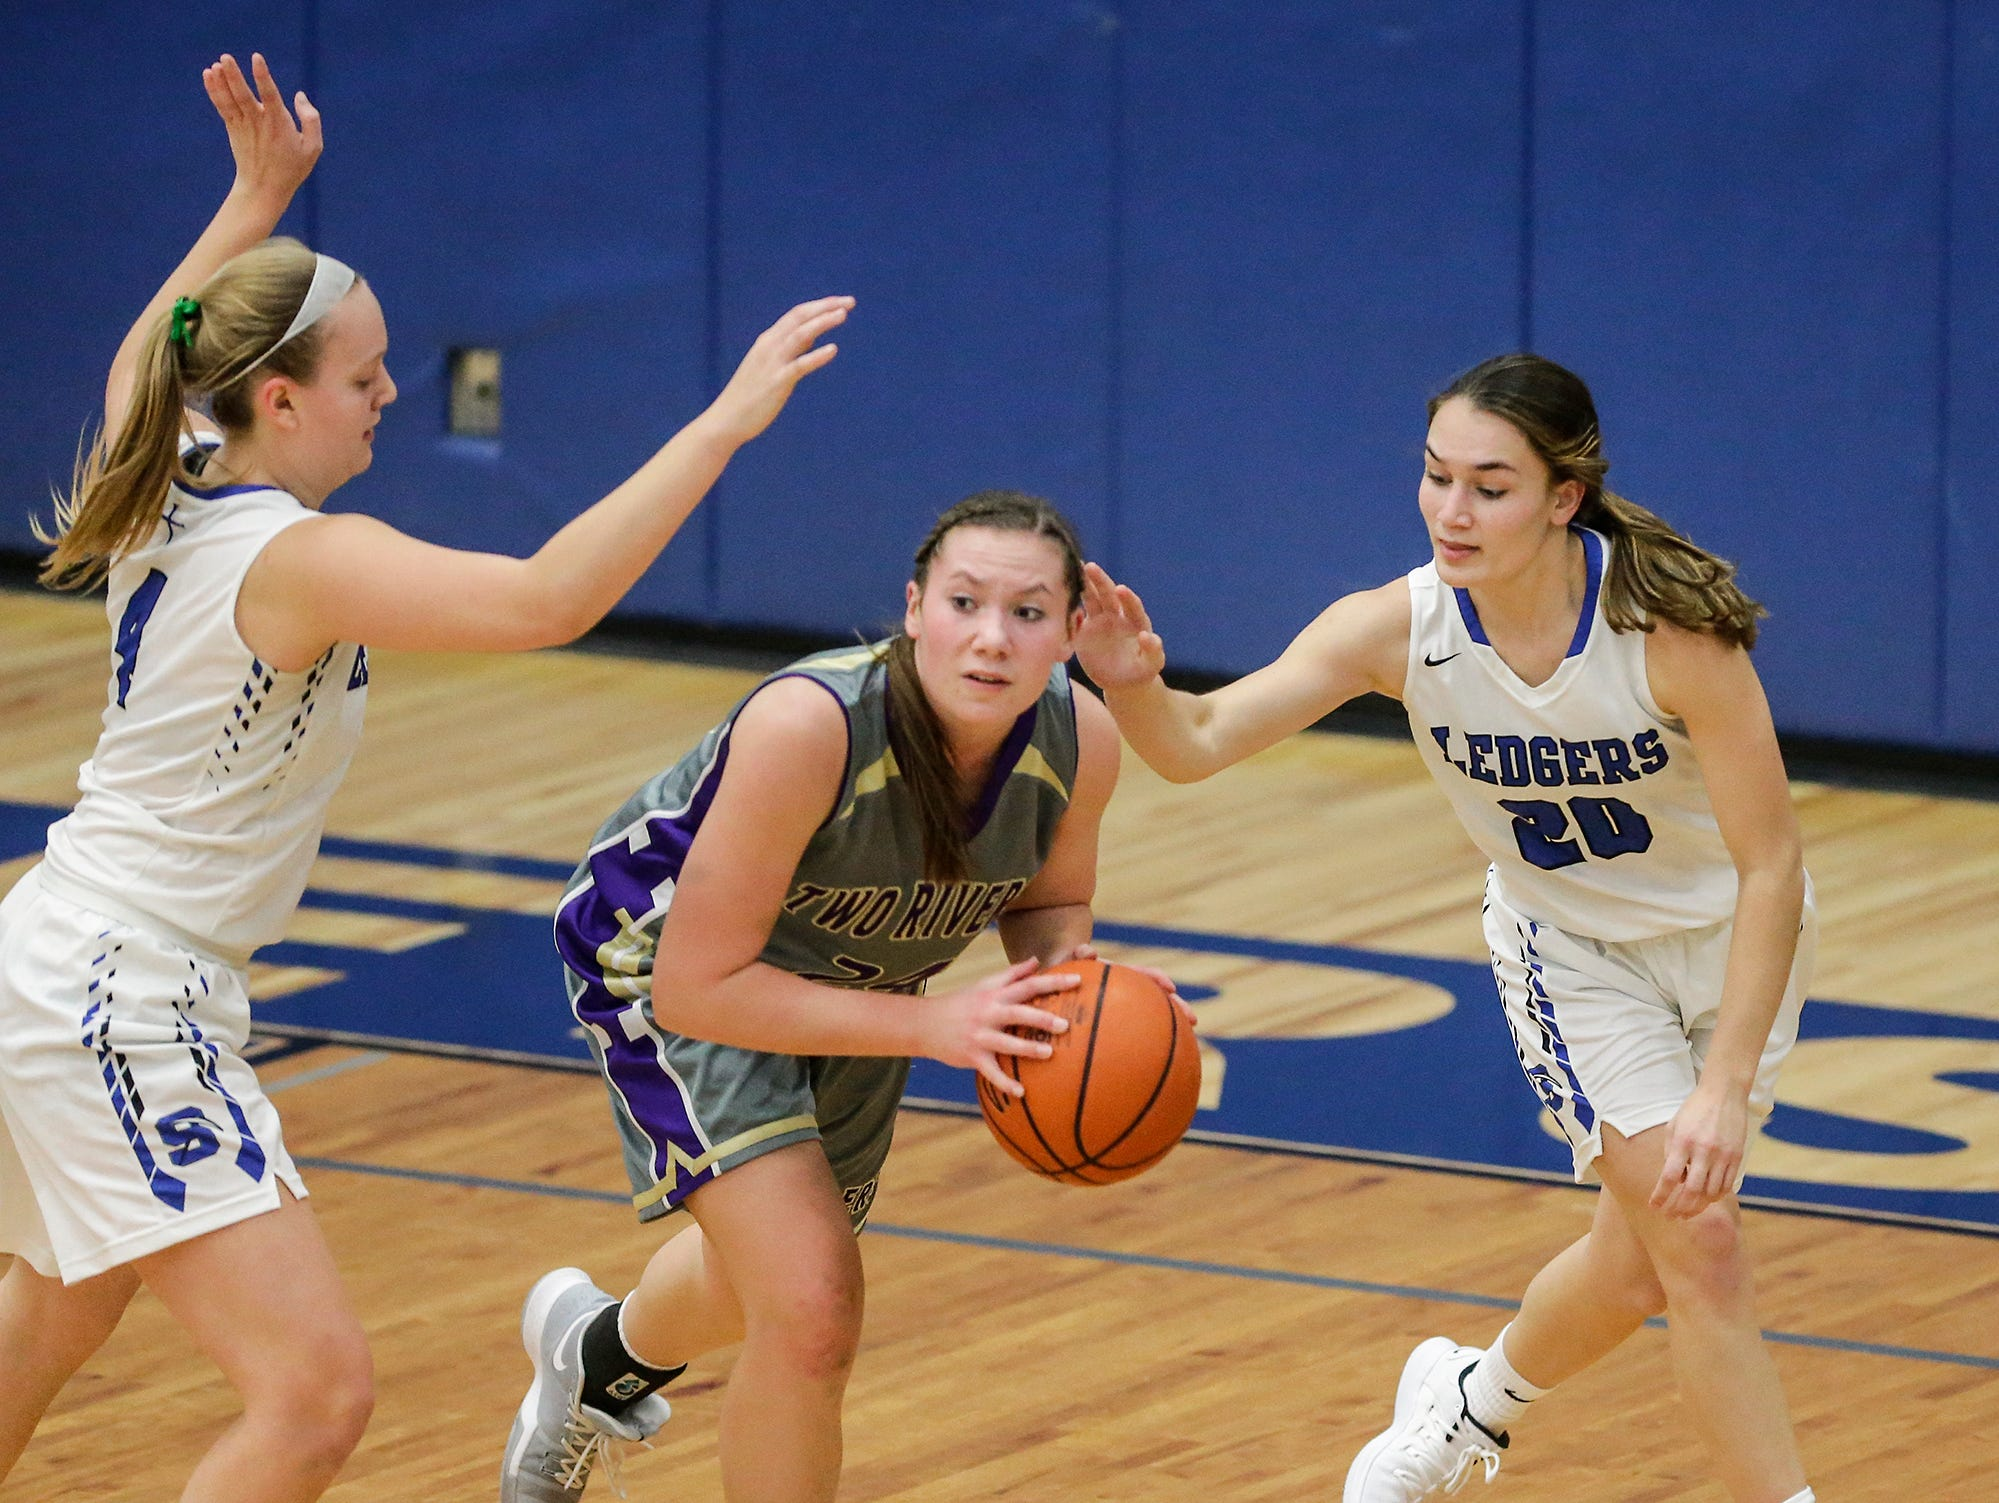 St. Mary's Springs girls basketball's Brianna Freund (4) and Jenna Gilgenbach (20) defend against Two Rivers High School's Kiley Graff during their game Friday, November 16, 2018 in Fond du Lac. Doug Raflik/USA TODAY NETWORK-Wisconsin